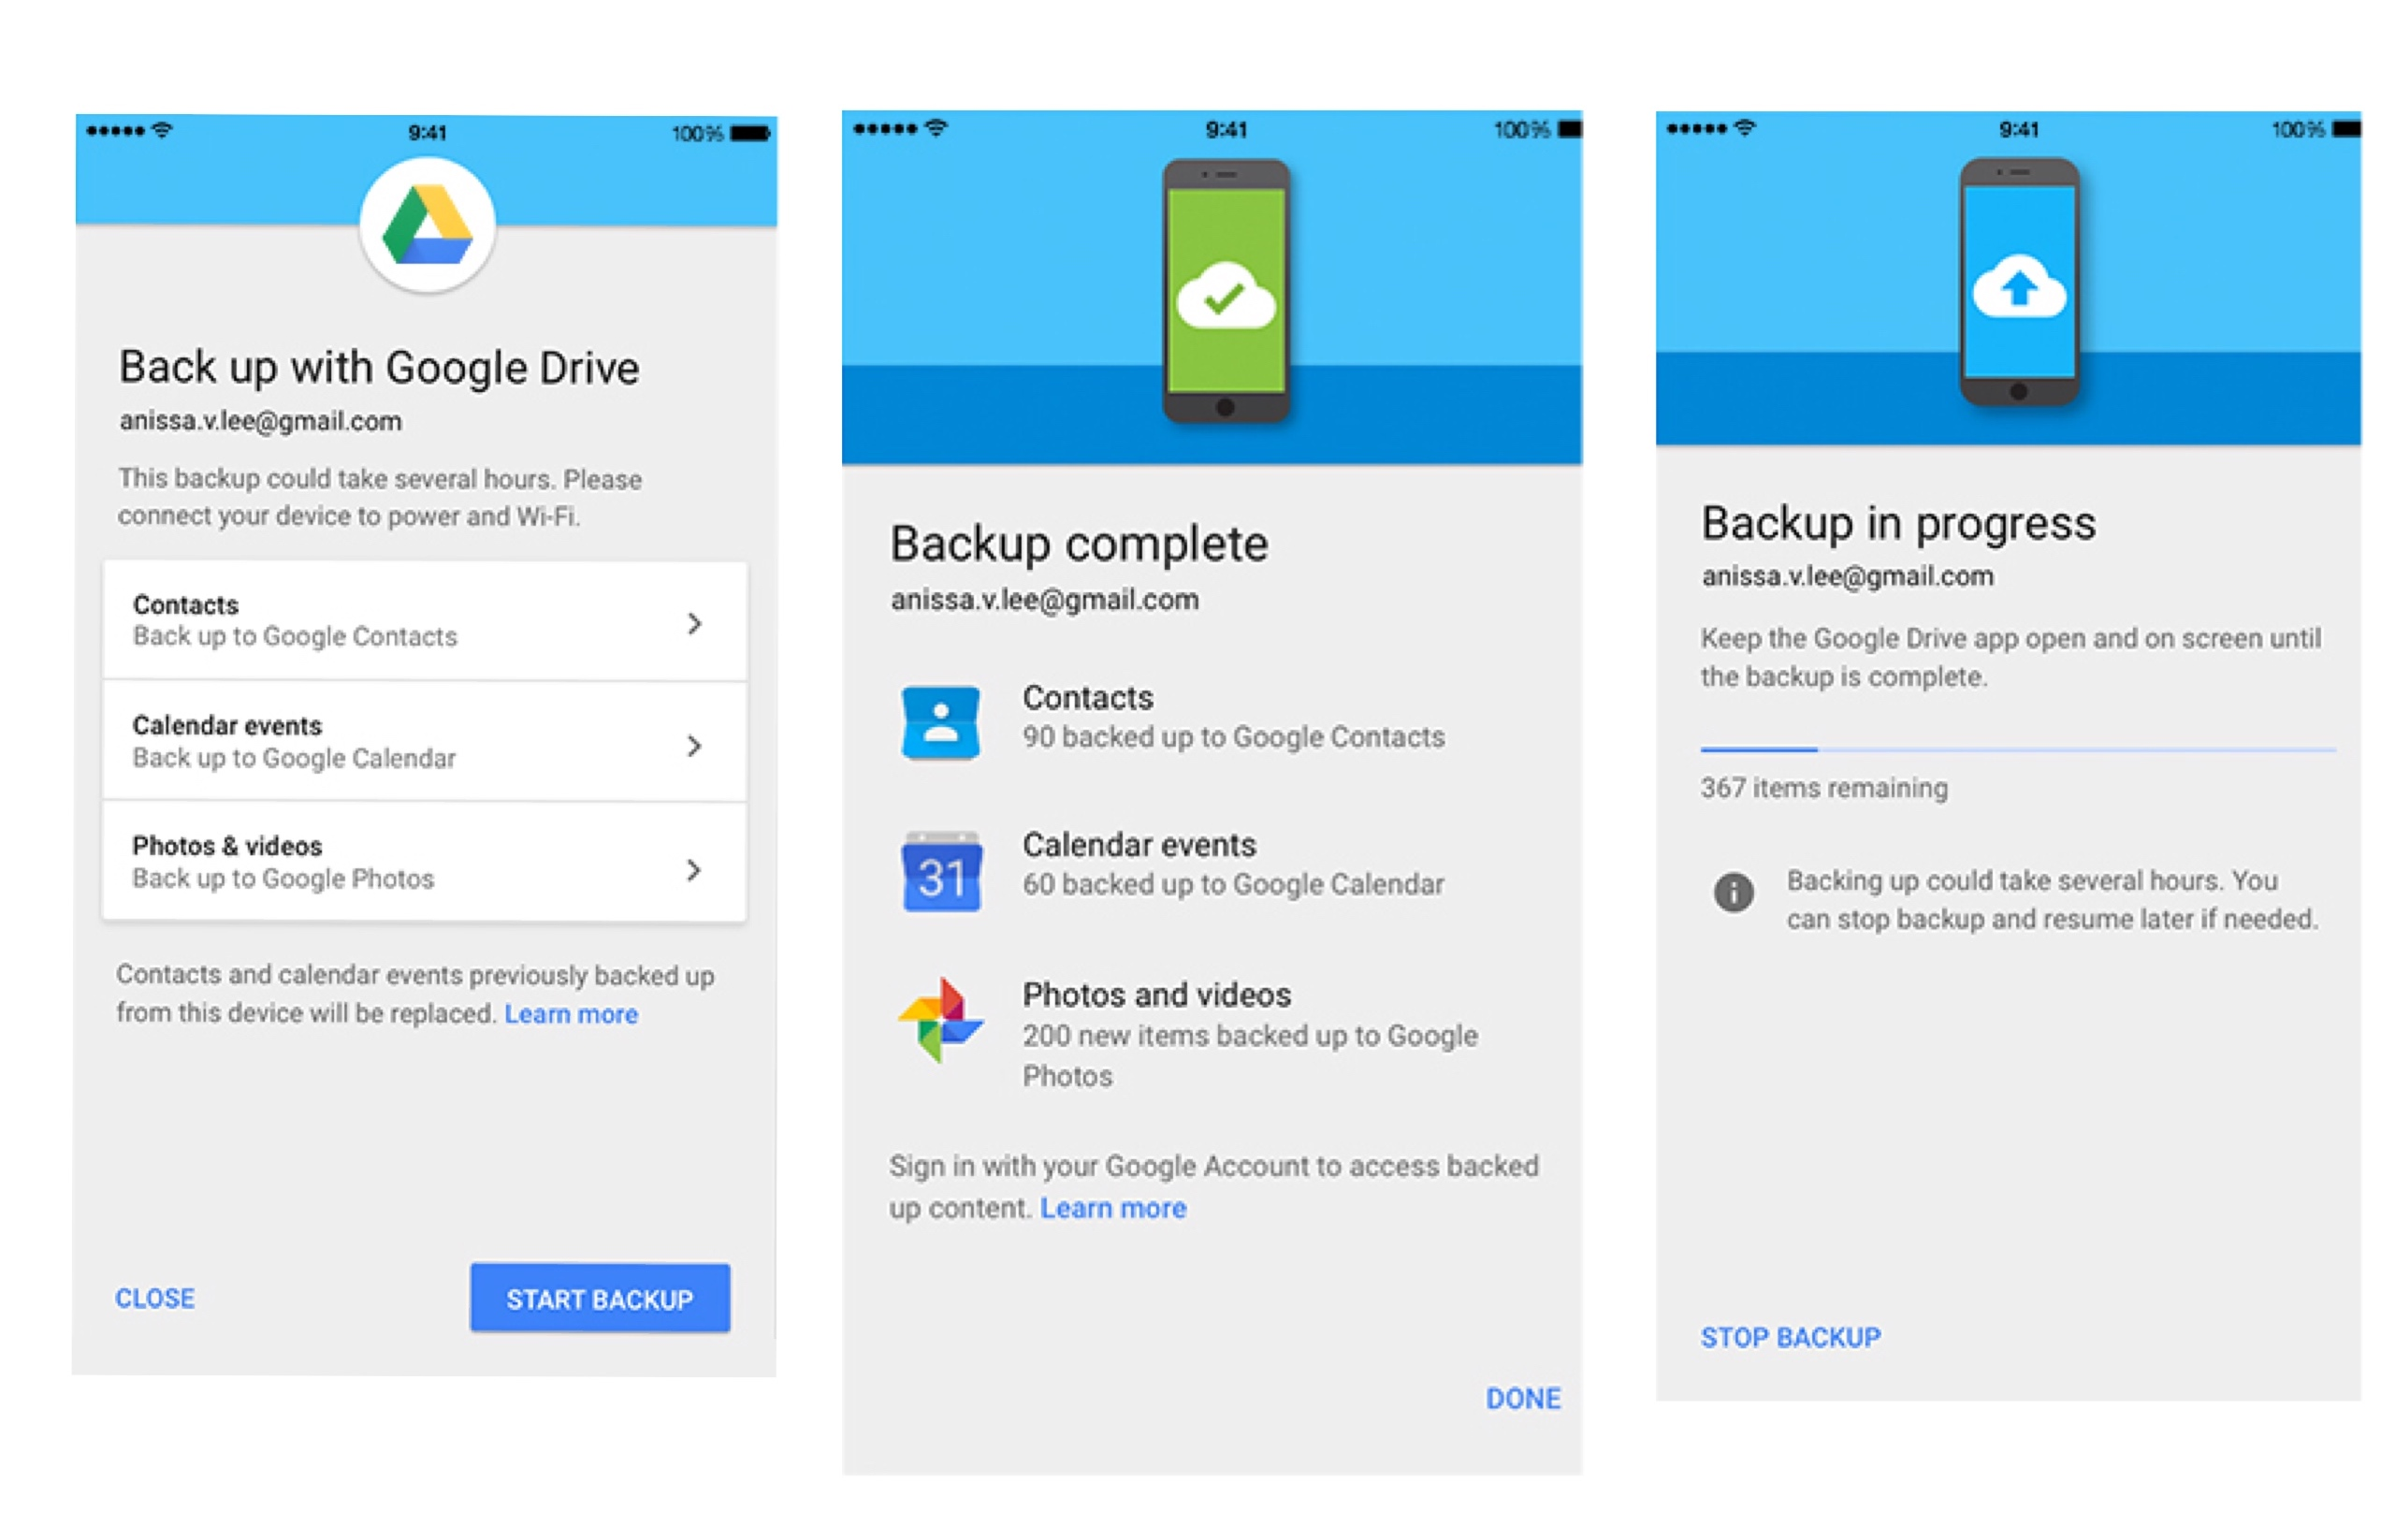 google drive for iphone 吸引 iphone 用戶跳槽 ios 版 drive 將支援備份聯絡人 行事曆 technews 科技新報 14215